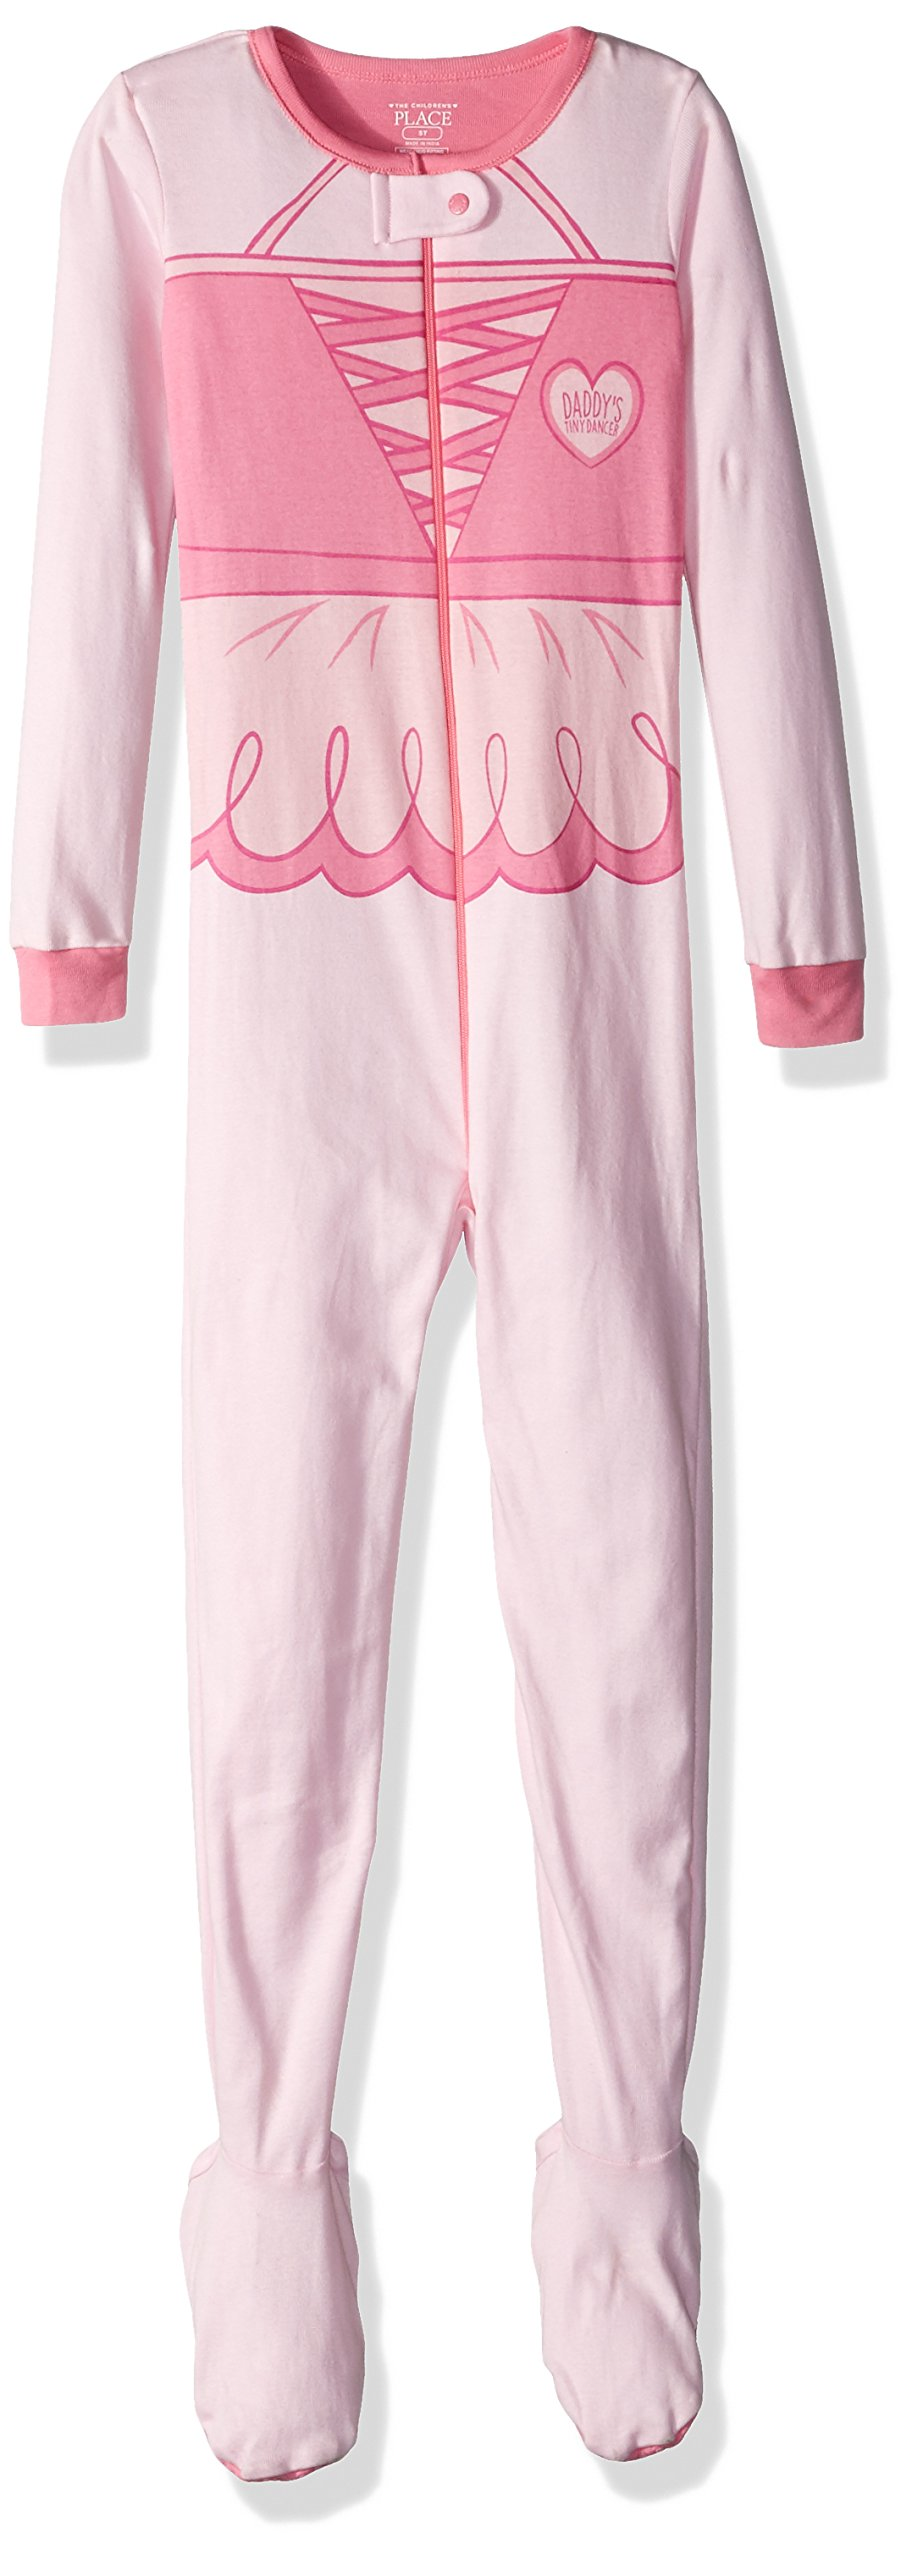 The Children's Place Girls' Long Sleeve One-Piece Pajamas 2